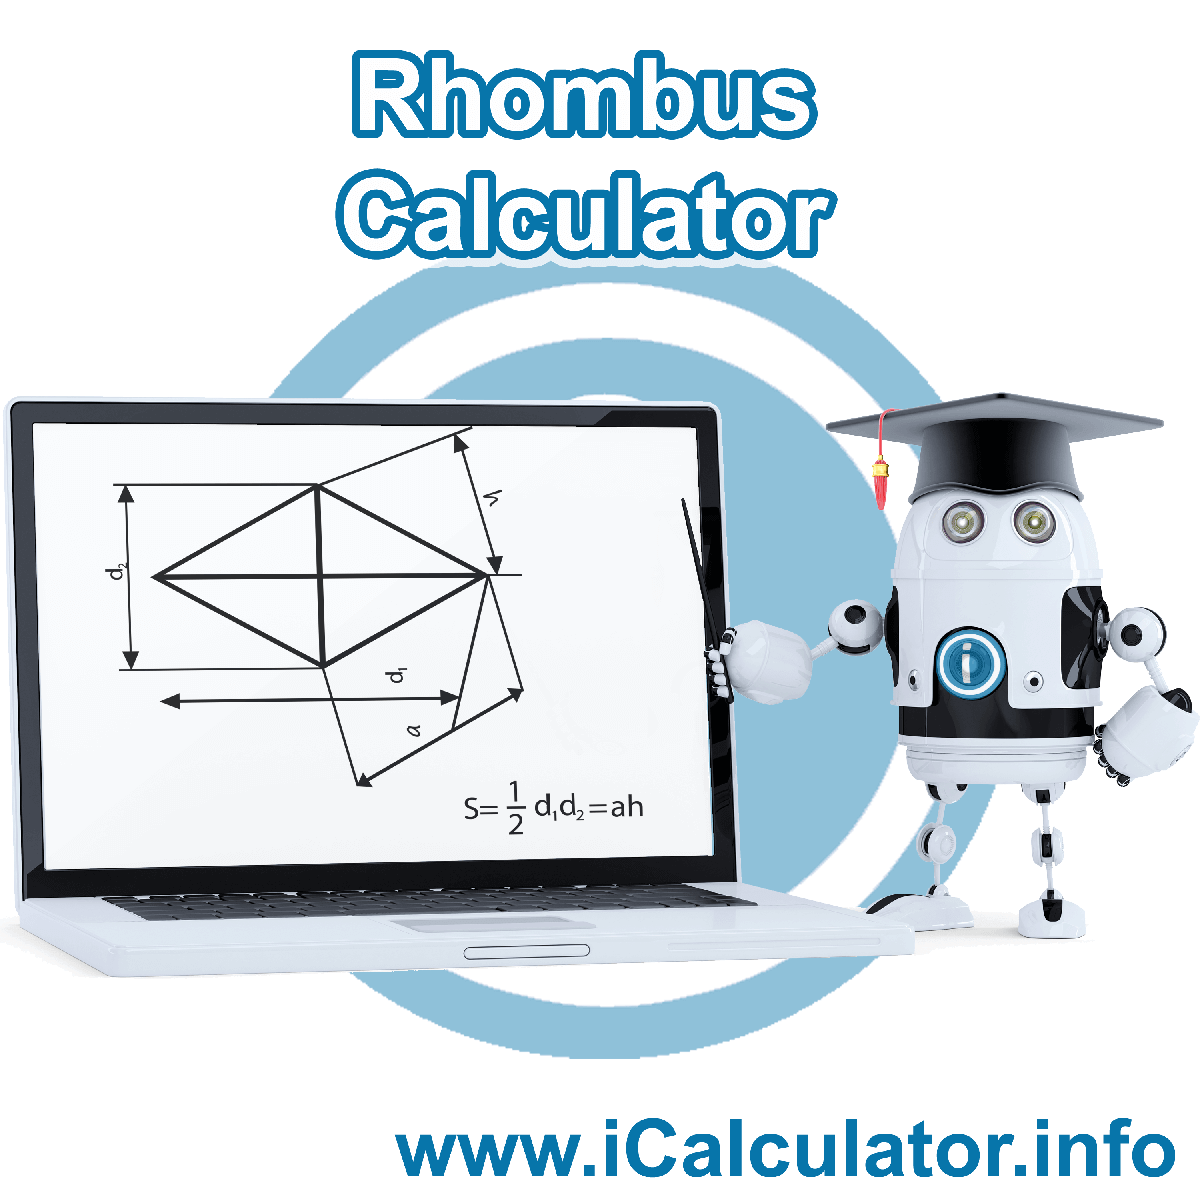 Rhombus Calculator. This image shows the properties and formula for the Rhombus Calculator